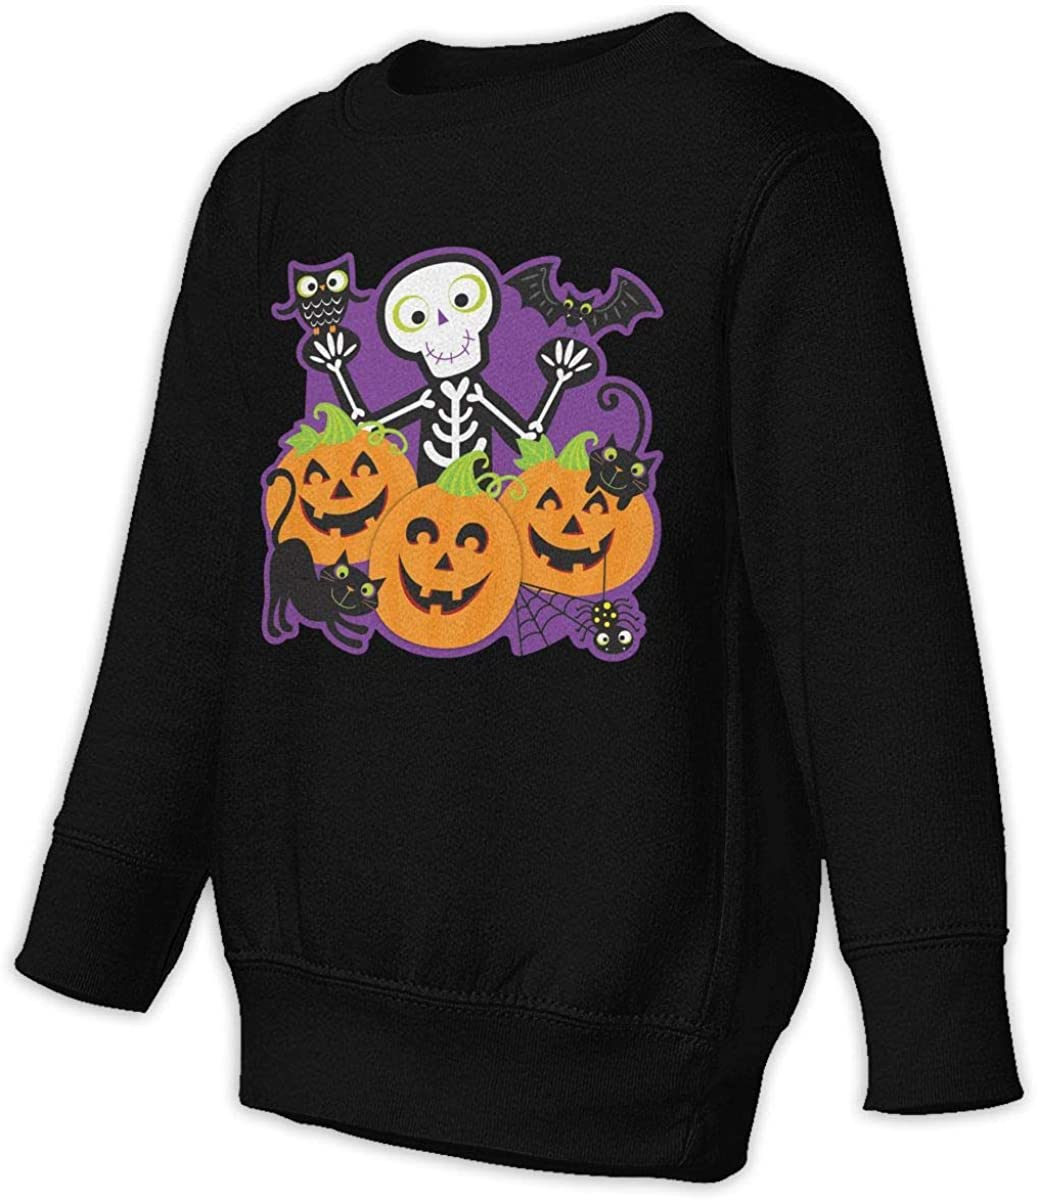 wudici Halloween Party Boys Girls Pullover Sweaters Crewneck Sweatshirts Clothes for 2-6 Years Old Children